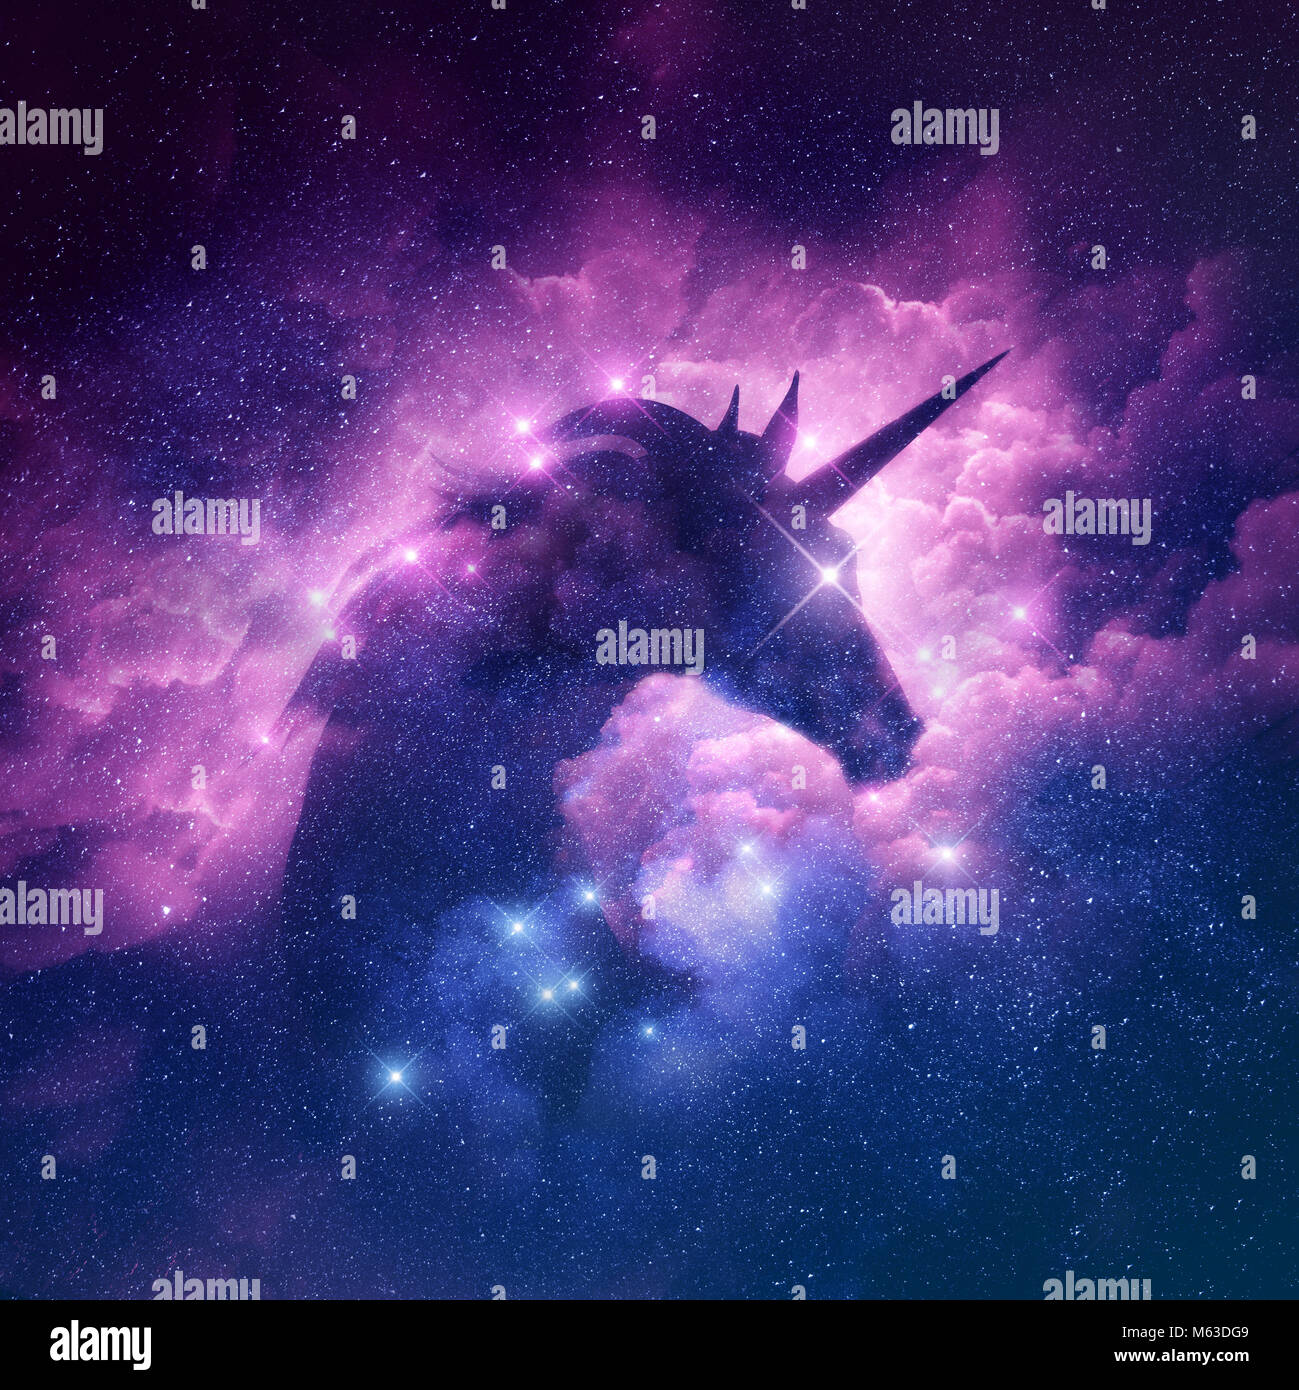 A unicorn silhouette in a galaxy nebula cloud. Raster illustration. - Stock Image